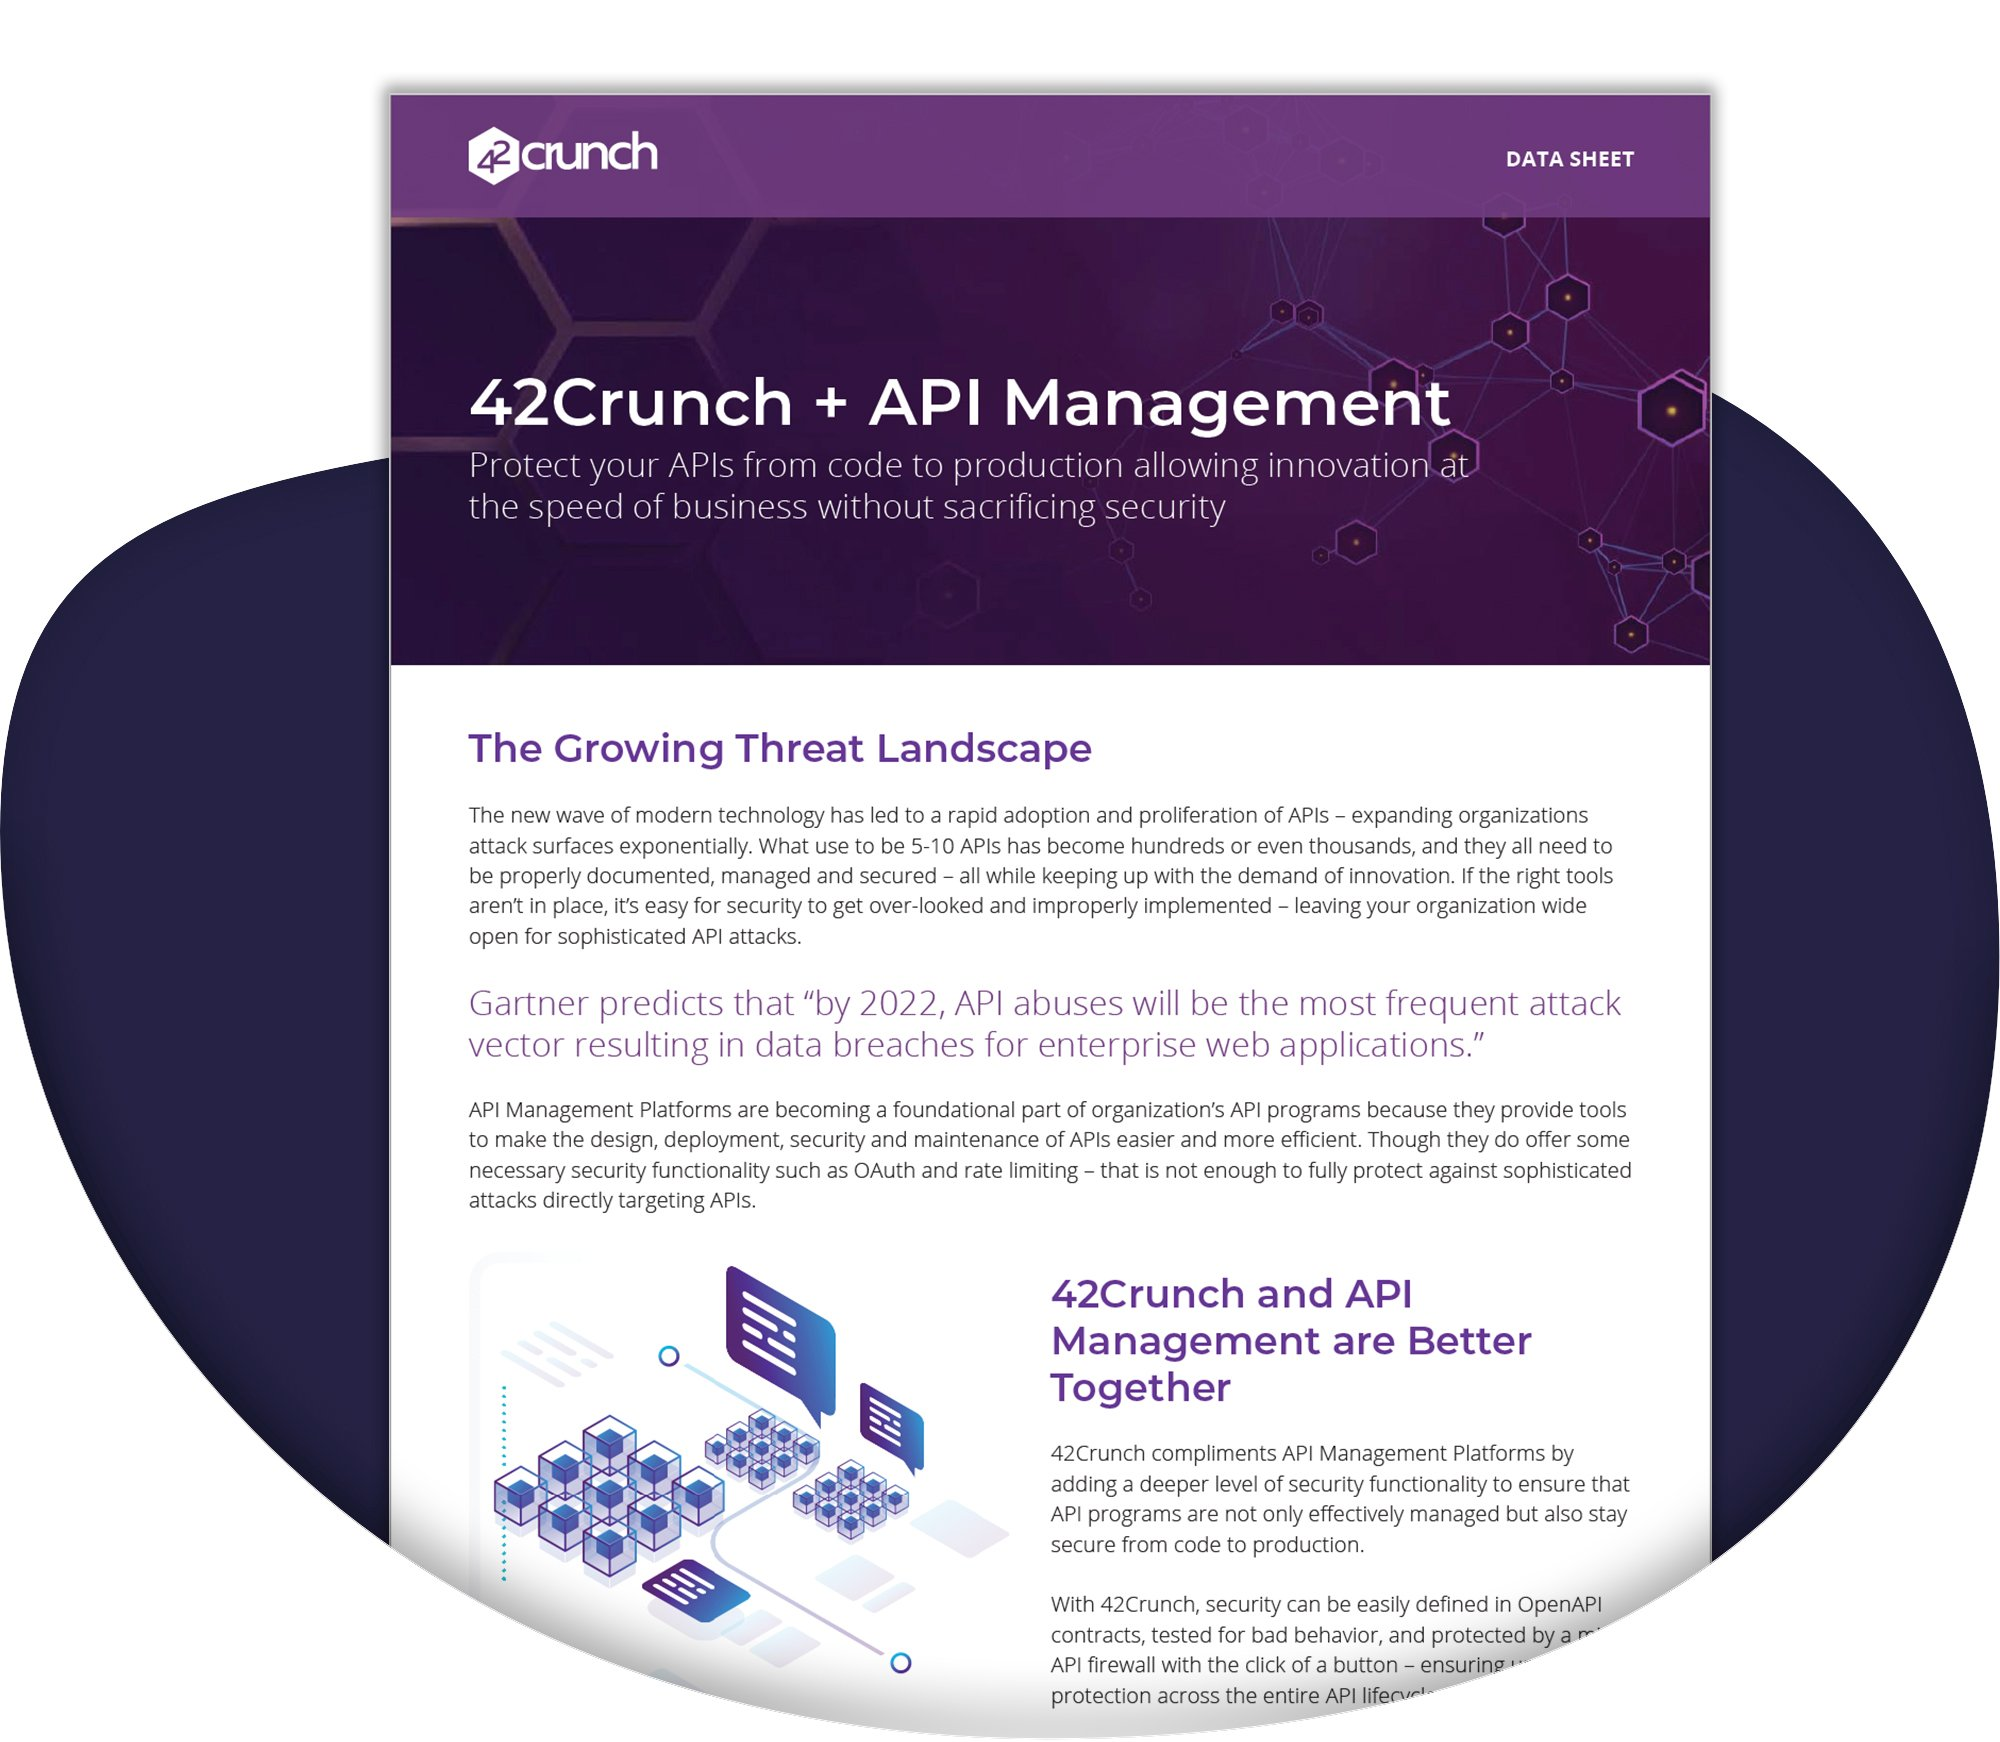 42Crunch and API Management Solutions